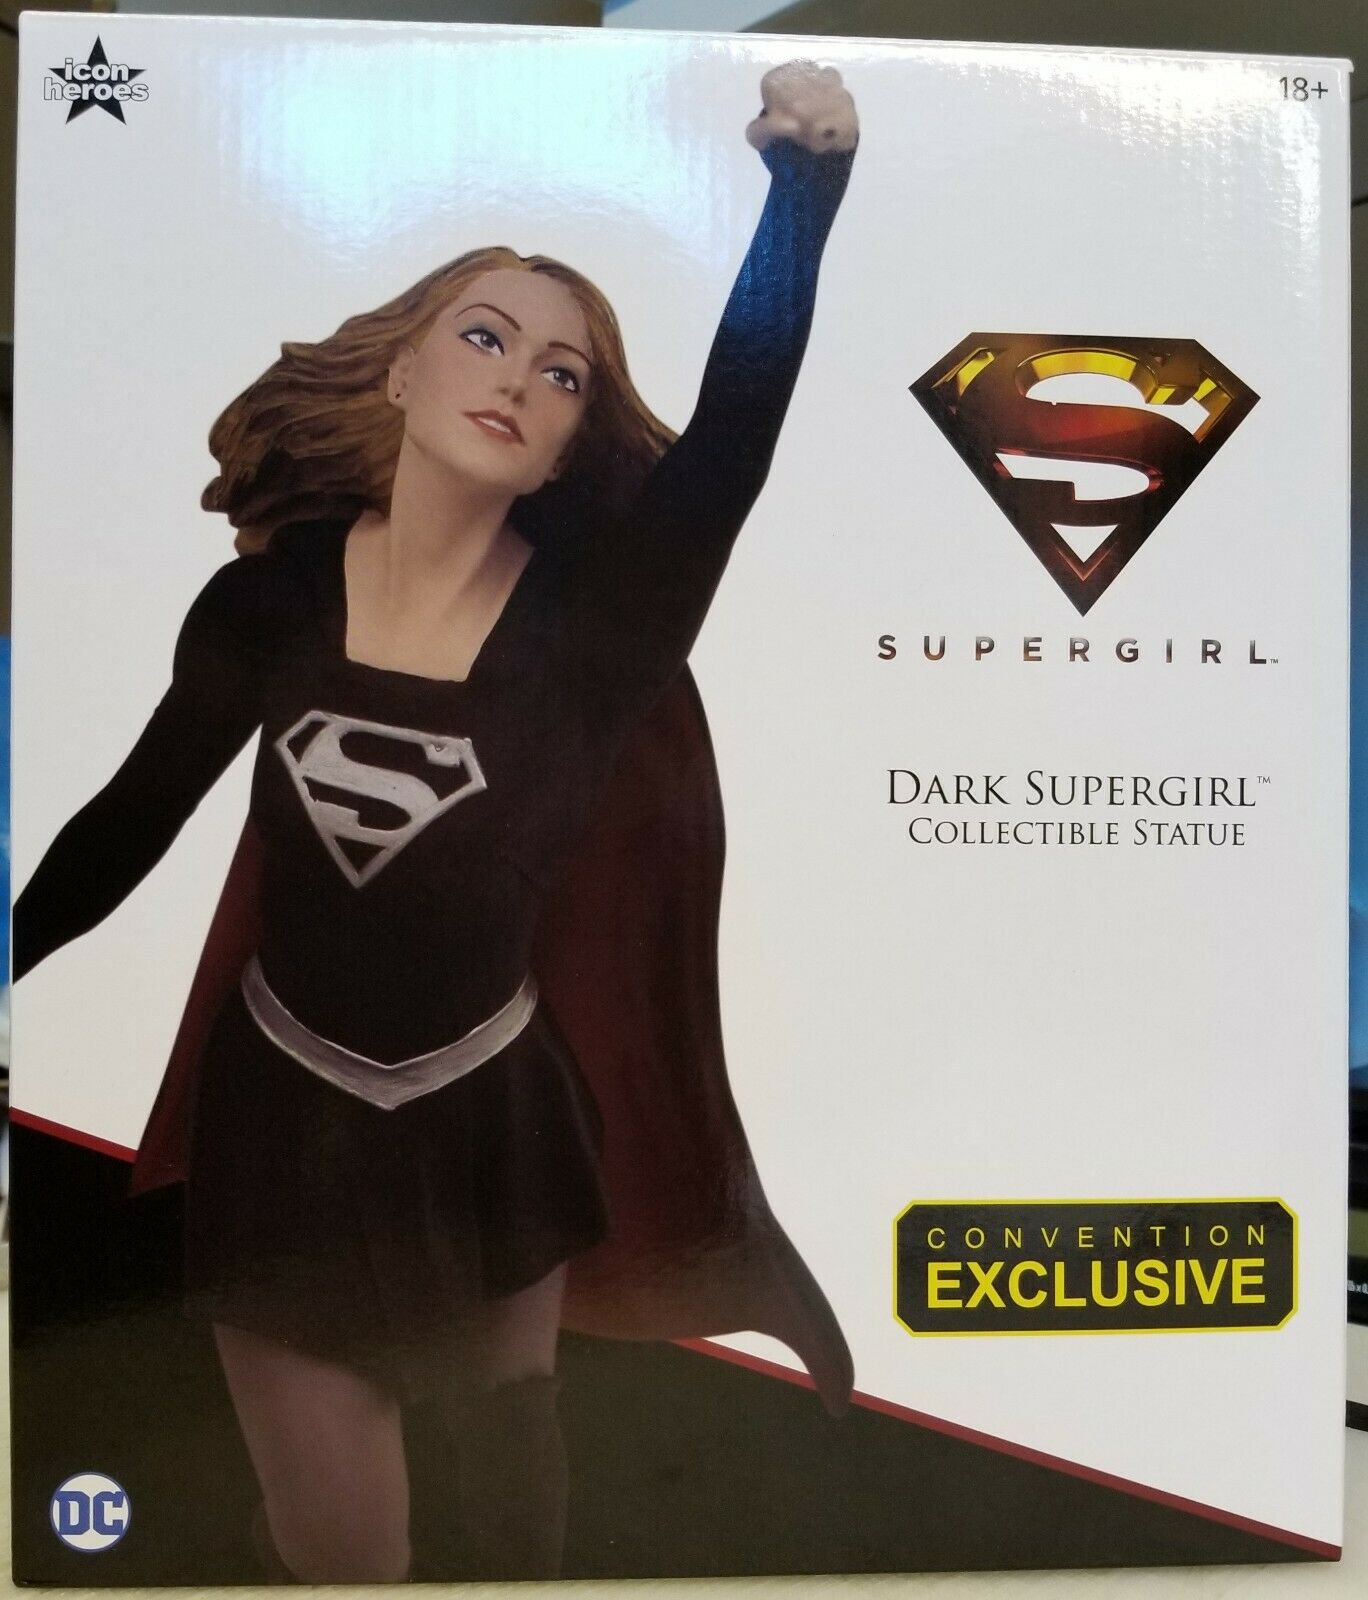 2019 SDCC Convention Exclusive Icon Heroes Dark Supergirl Polystone Resin Statue